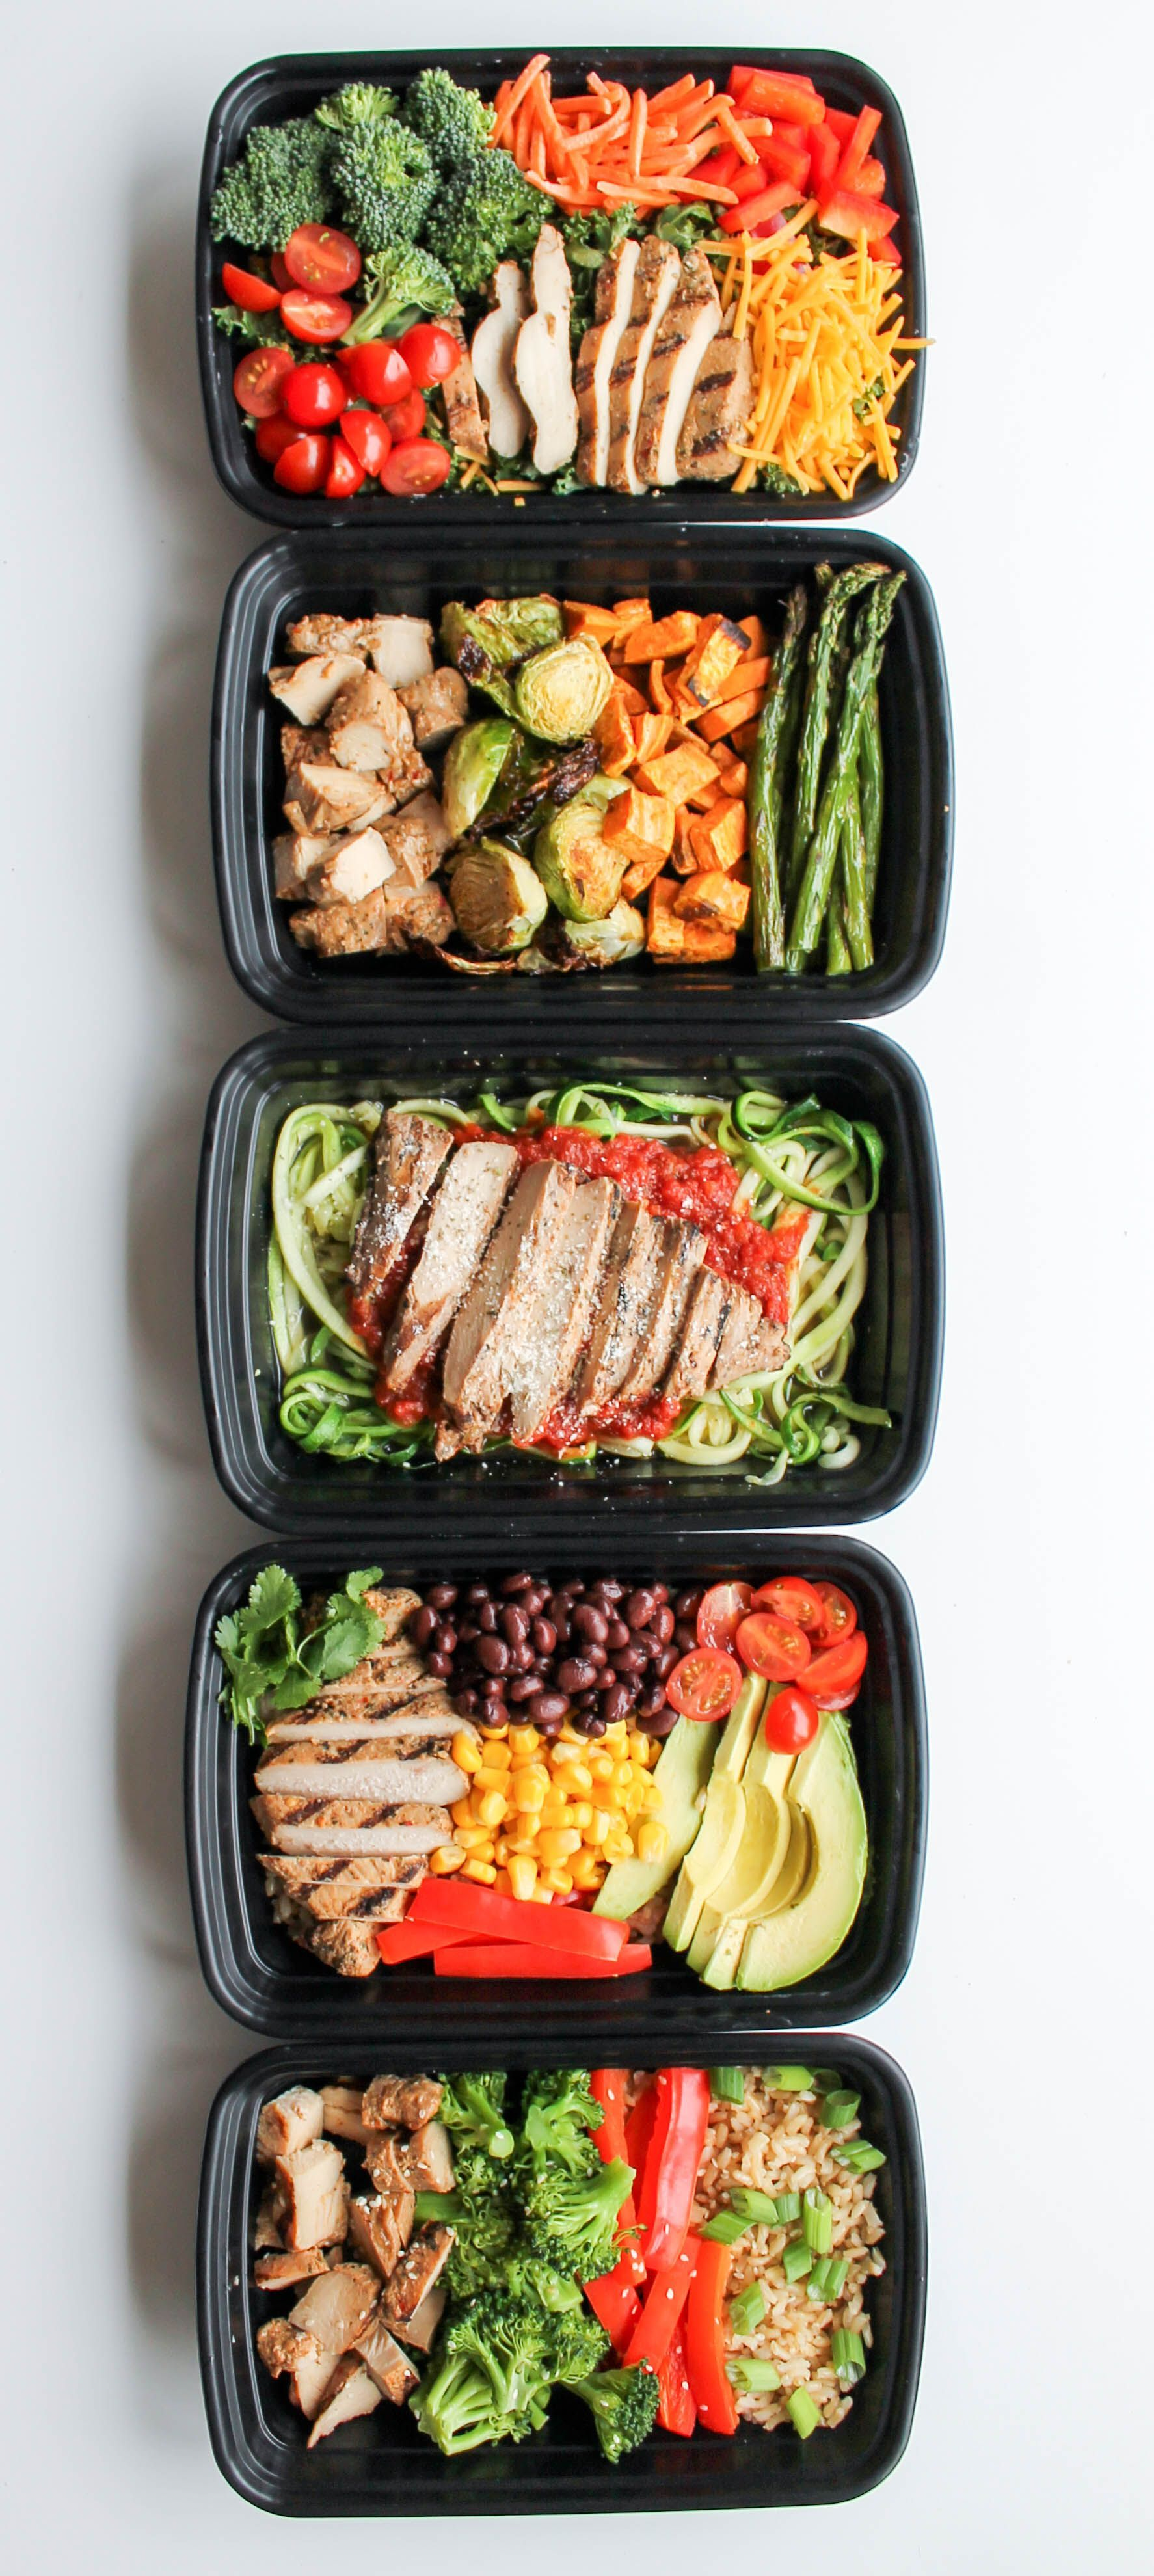 Easy Chicken Meal Prep Bowls 5 Ways This Is A Quick And Easy Way To Have Healthy Lunch Recipes And He Easy Chicken Recipes Chicken Meal Prep Meal Prep Bowls